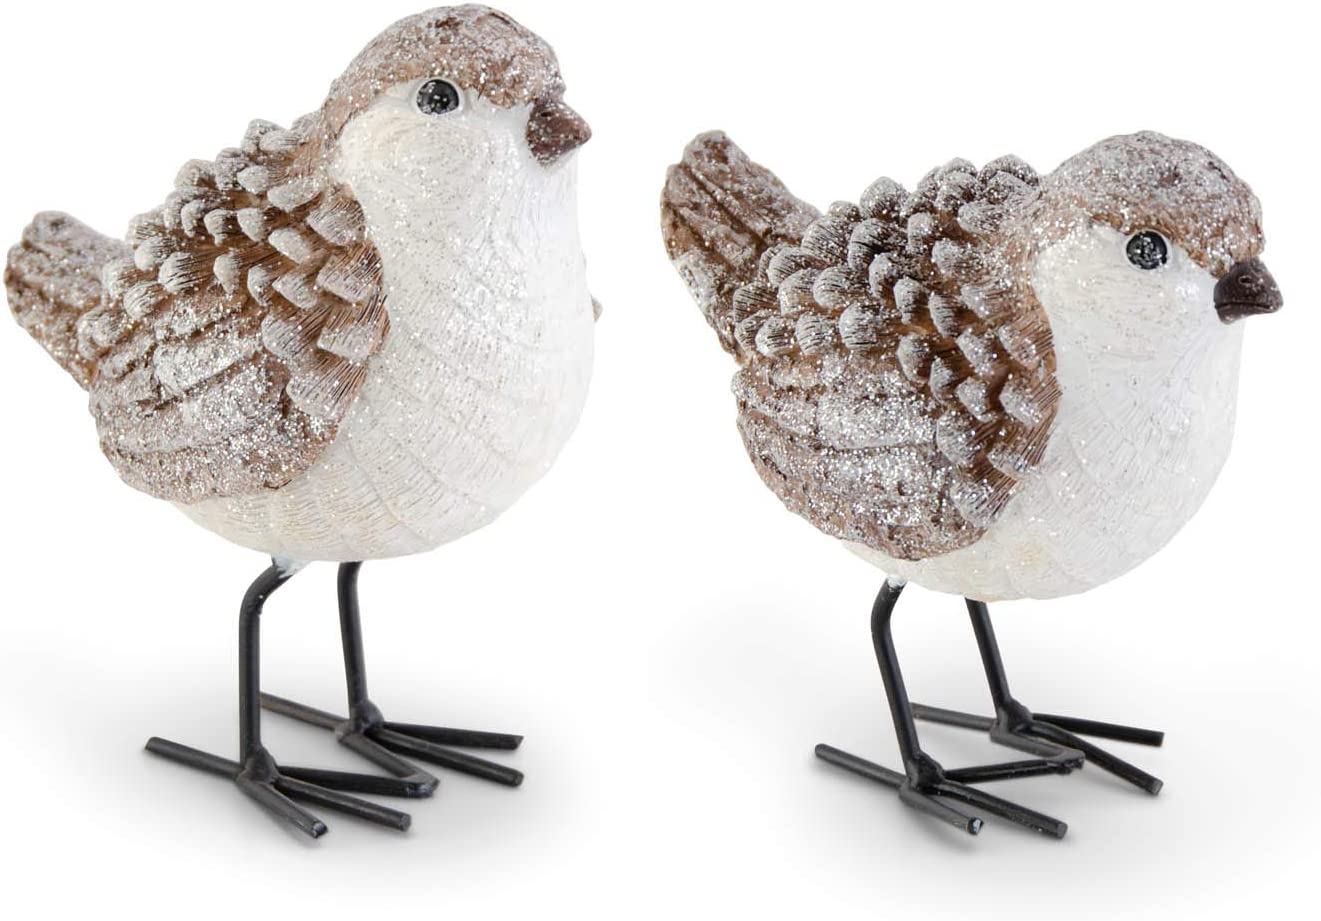 K&K Interiors 54275A Assorted Brown and White Glittered Wood Grain Pinecone Birds-2 Styles